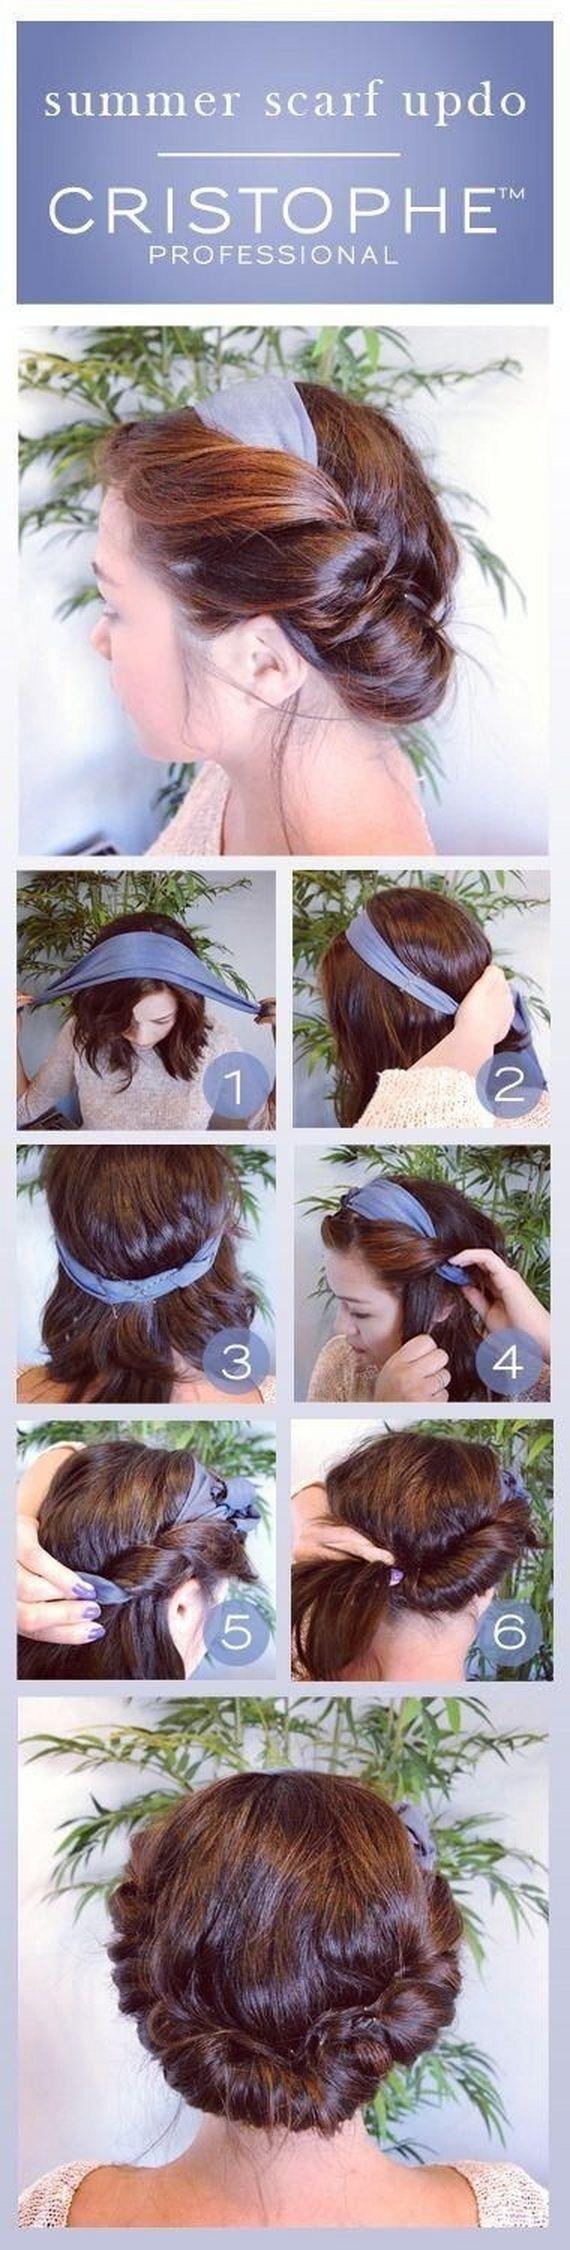 03-Five-Minute-Hairstyles